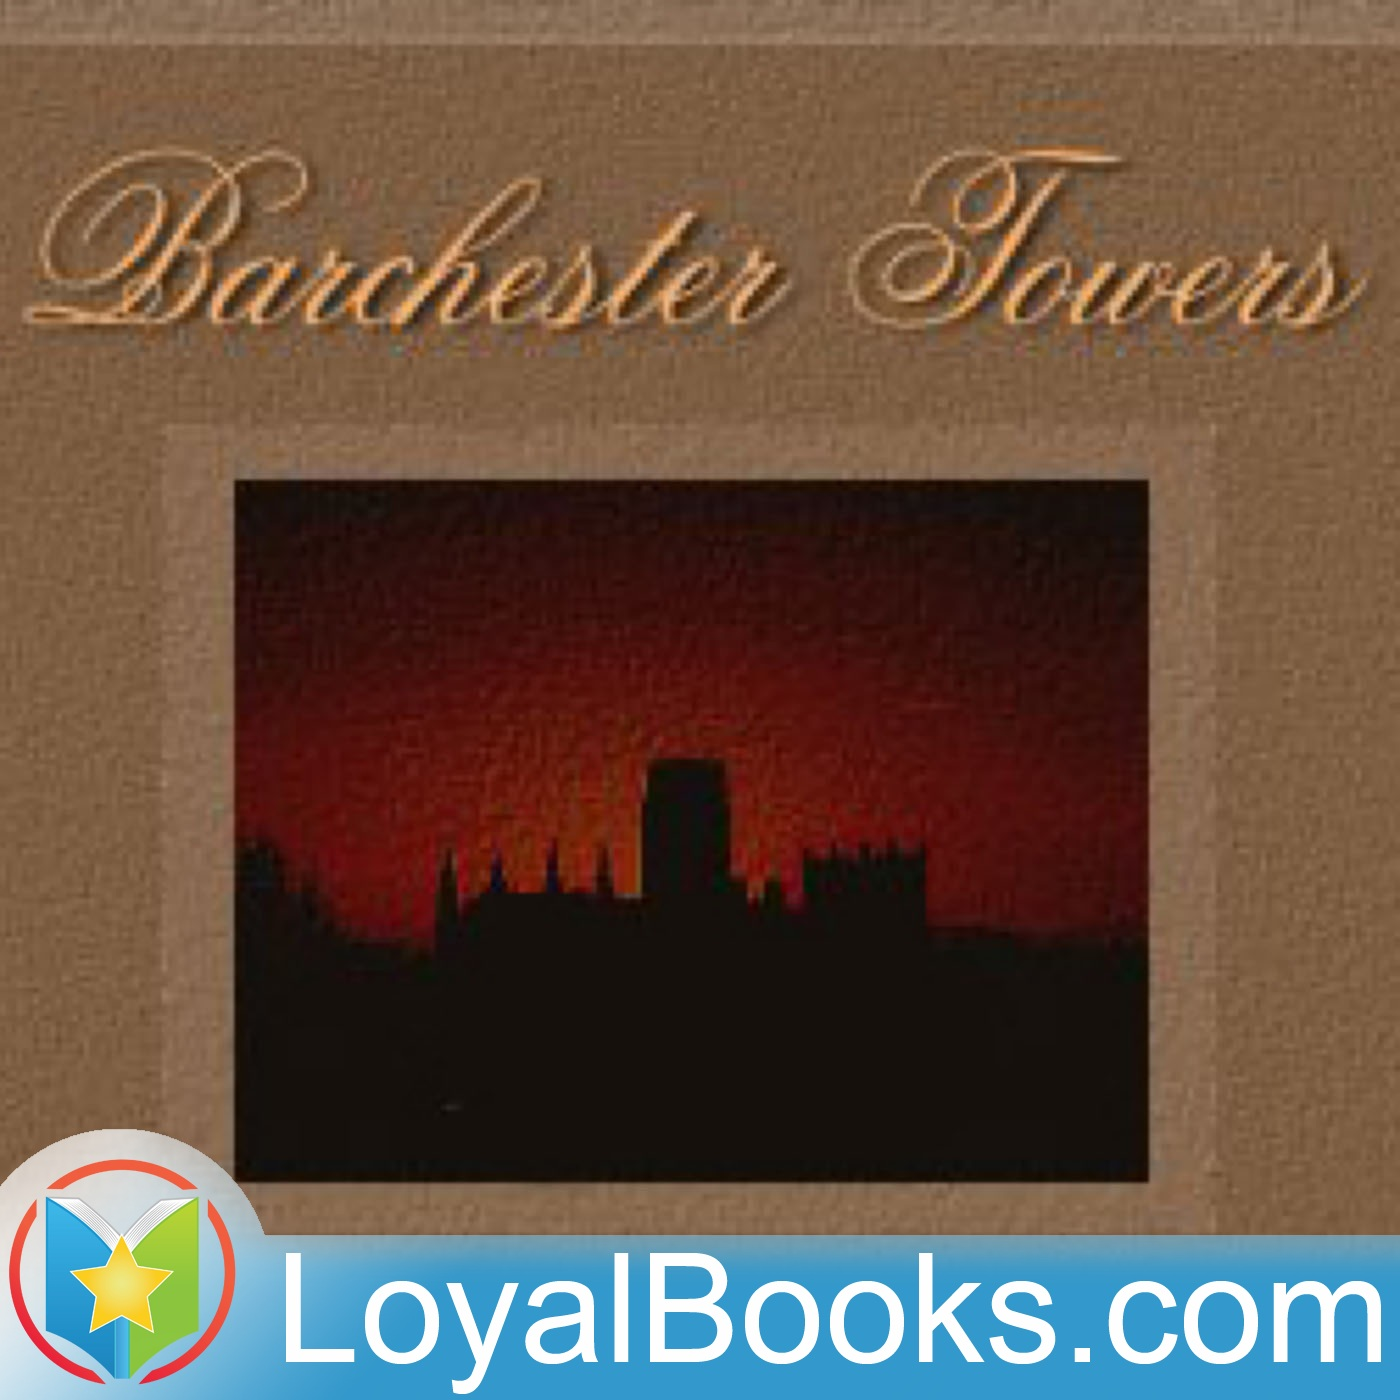 <![CDATA[Barchester Towers by Anthony Trollope]]>